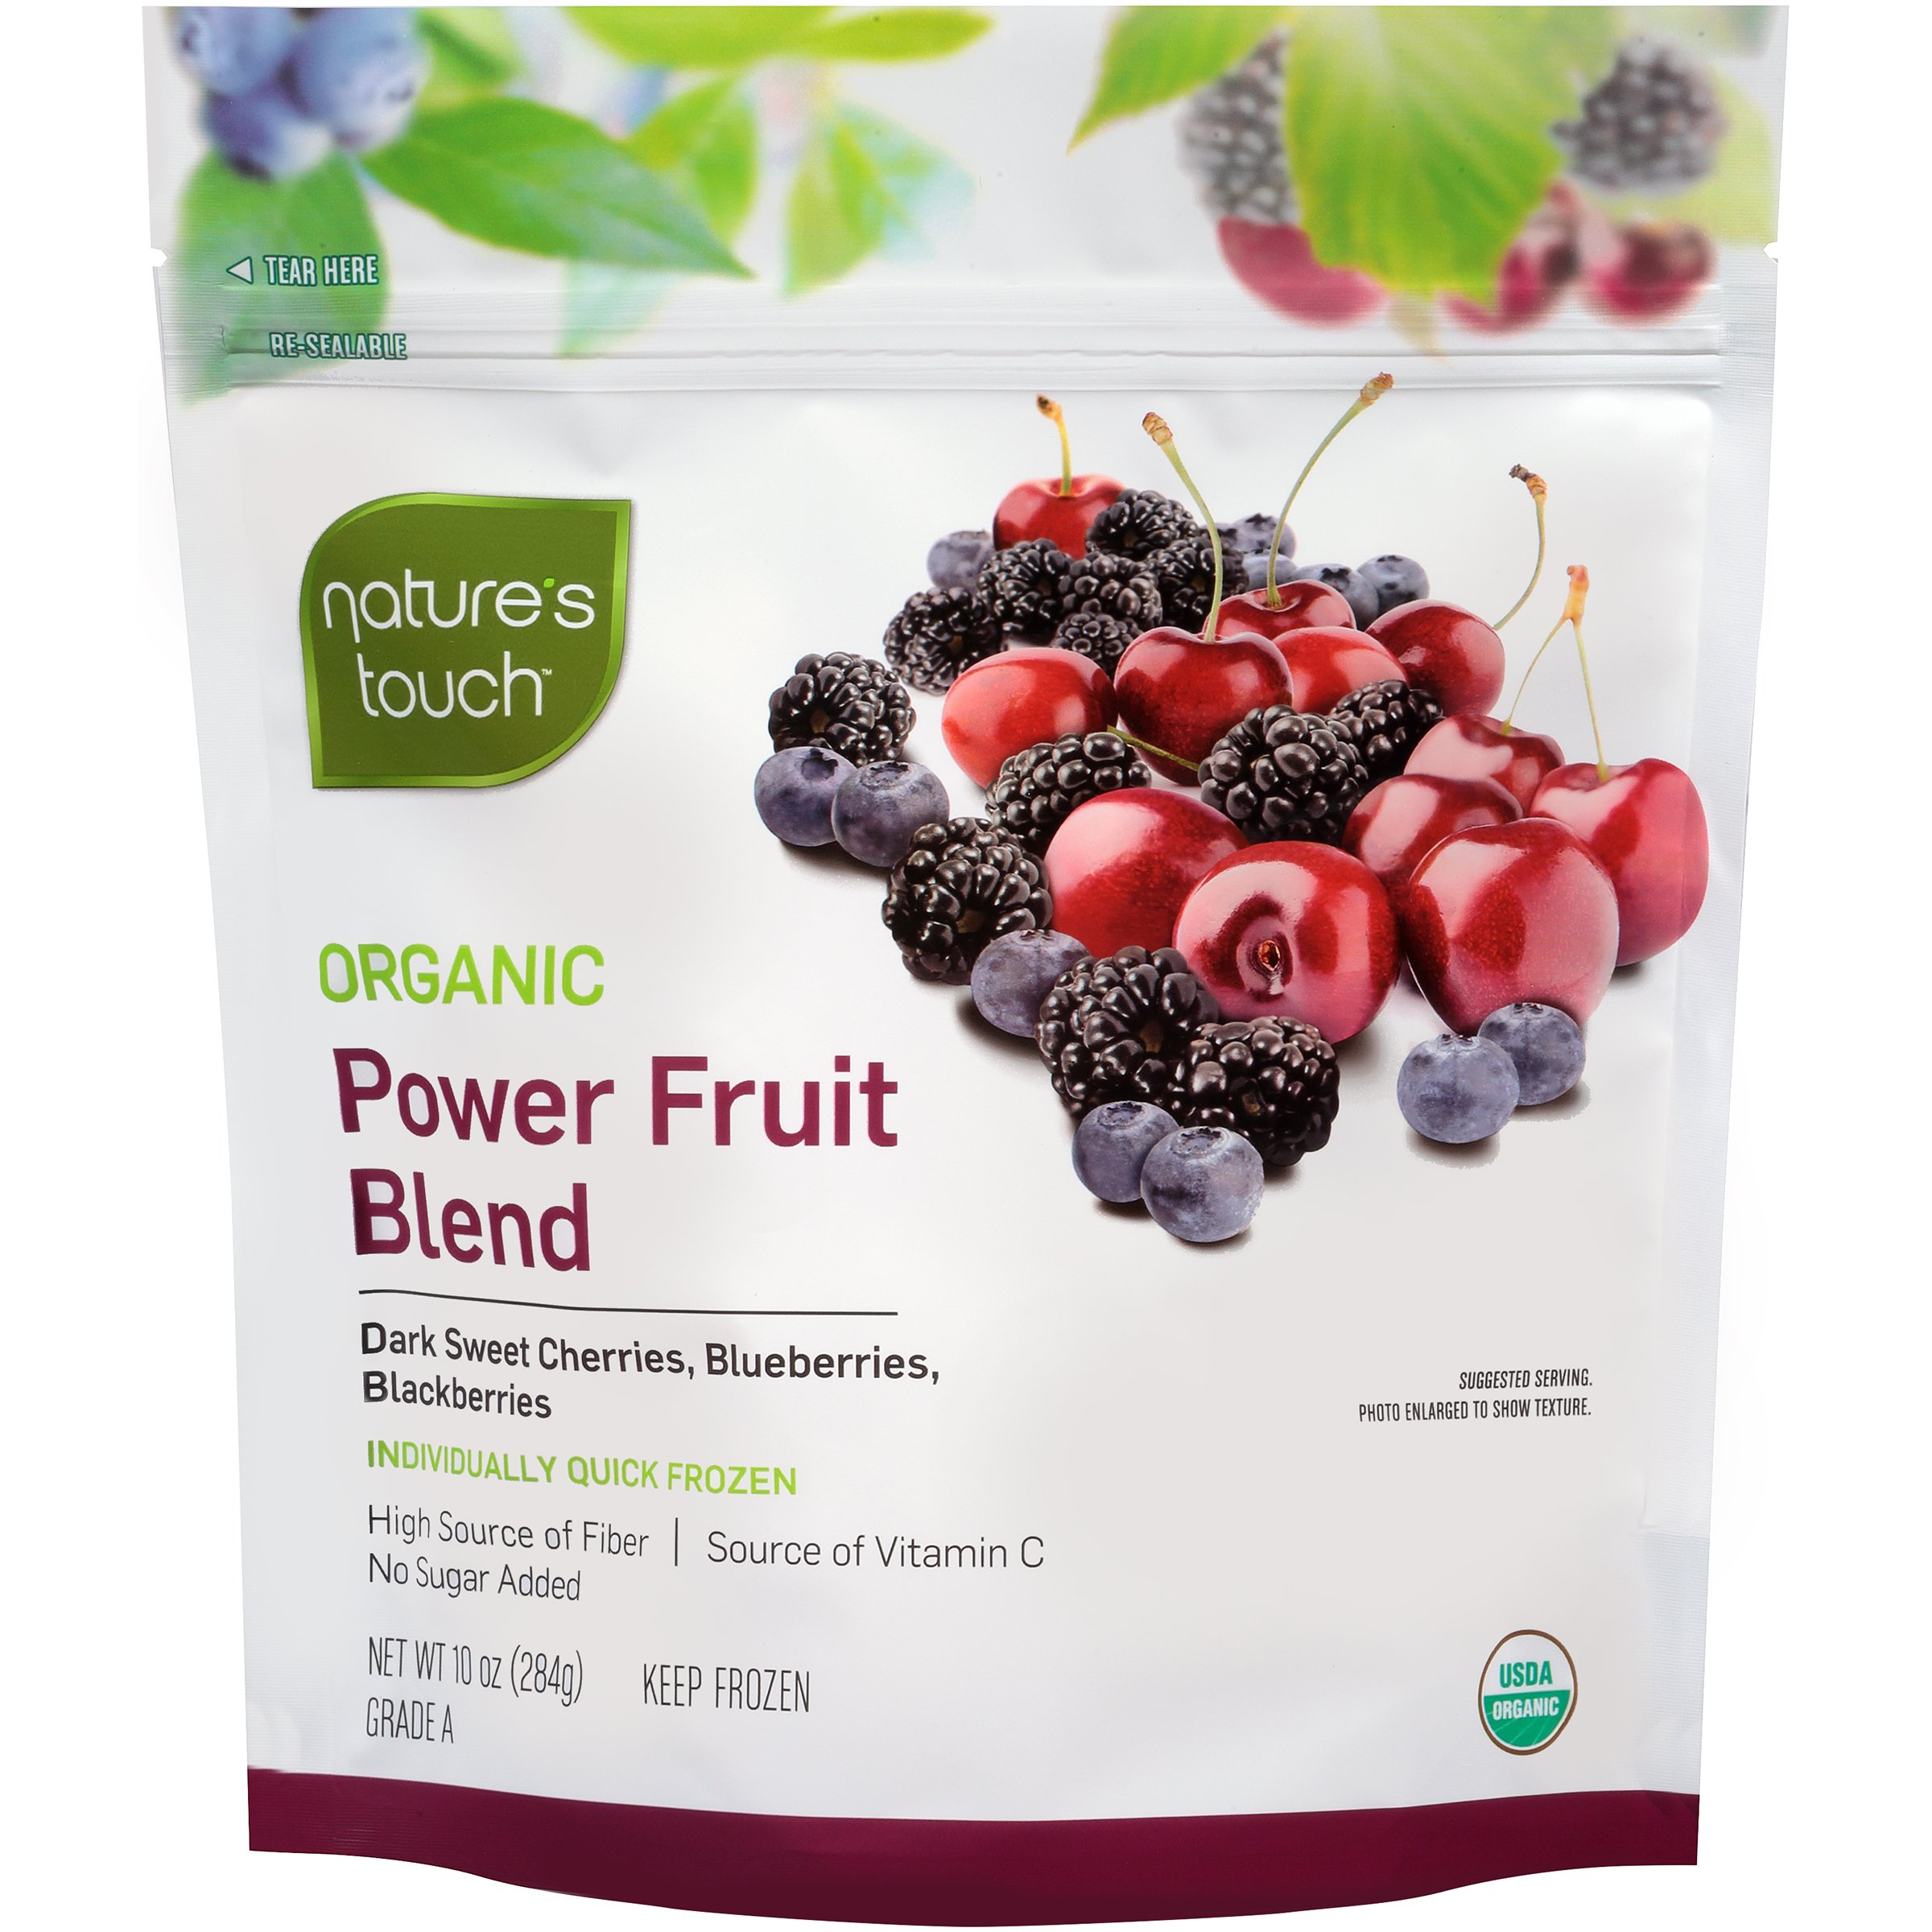 Nature's Touch Organic Fruits, Power Fruit Blend, 10.0 oz. (8 Count)